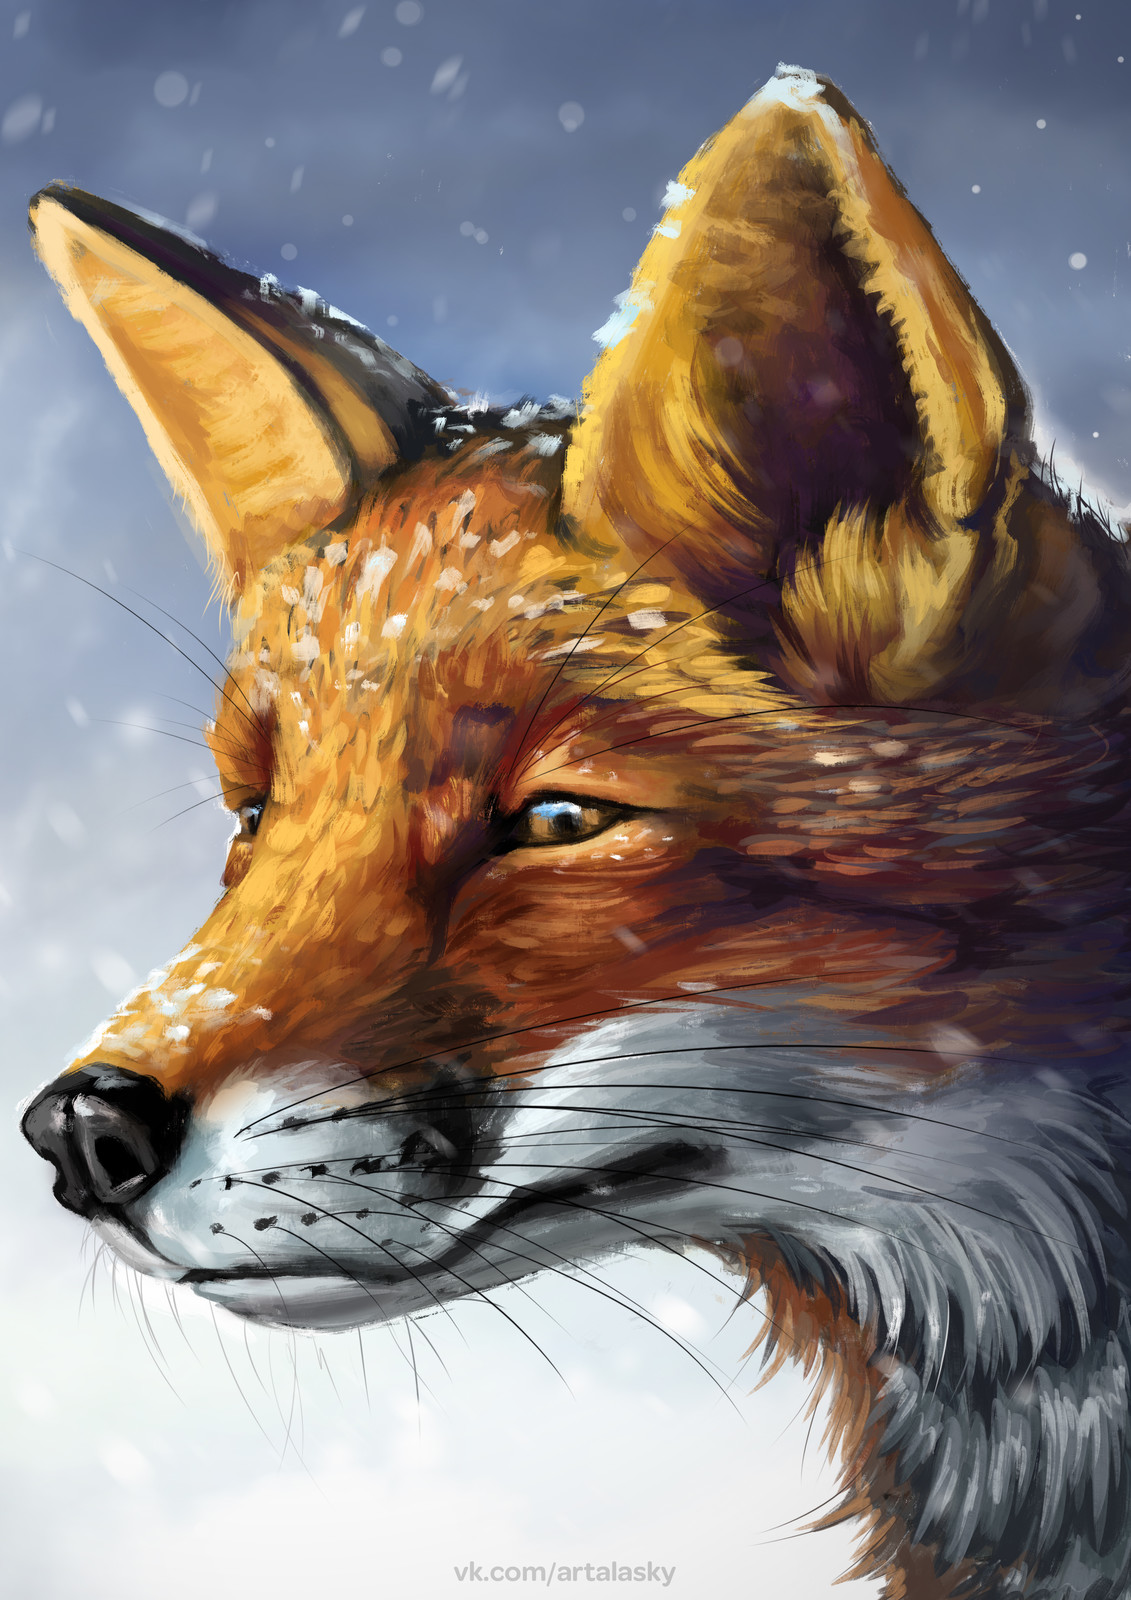 What does the fox say? ;)